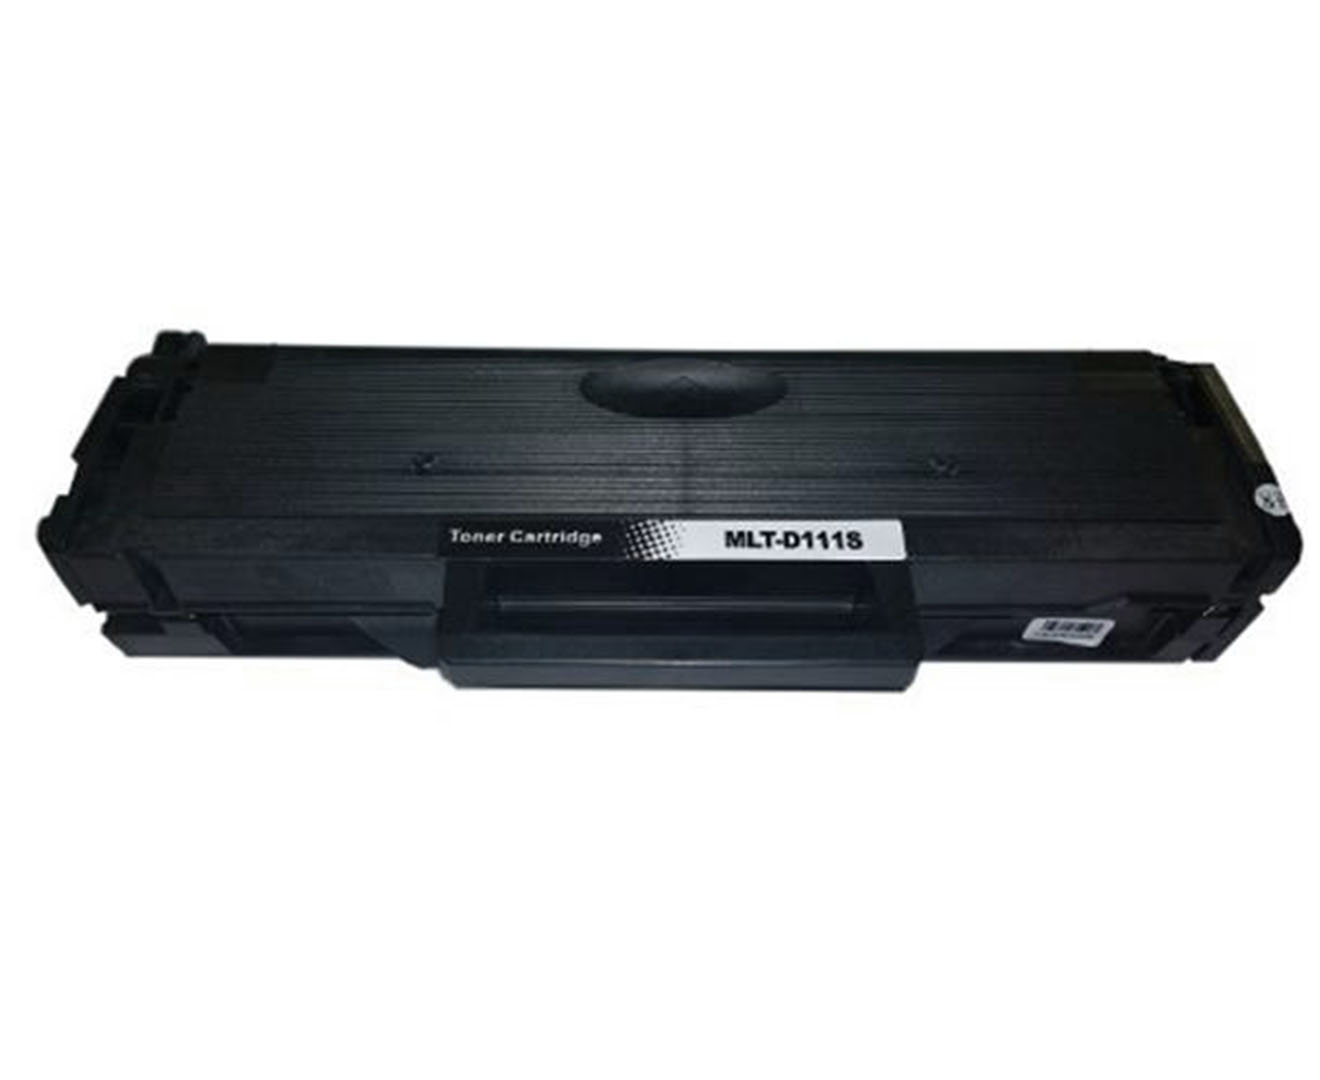 mlt d111s compatible toner cartridge for samsung. Black Bedroom Furniture Sets. Home Design Ideas